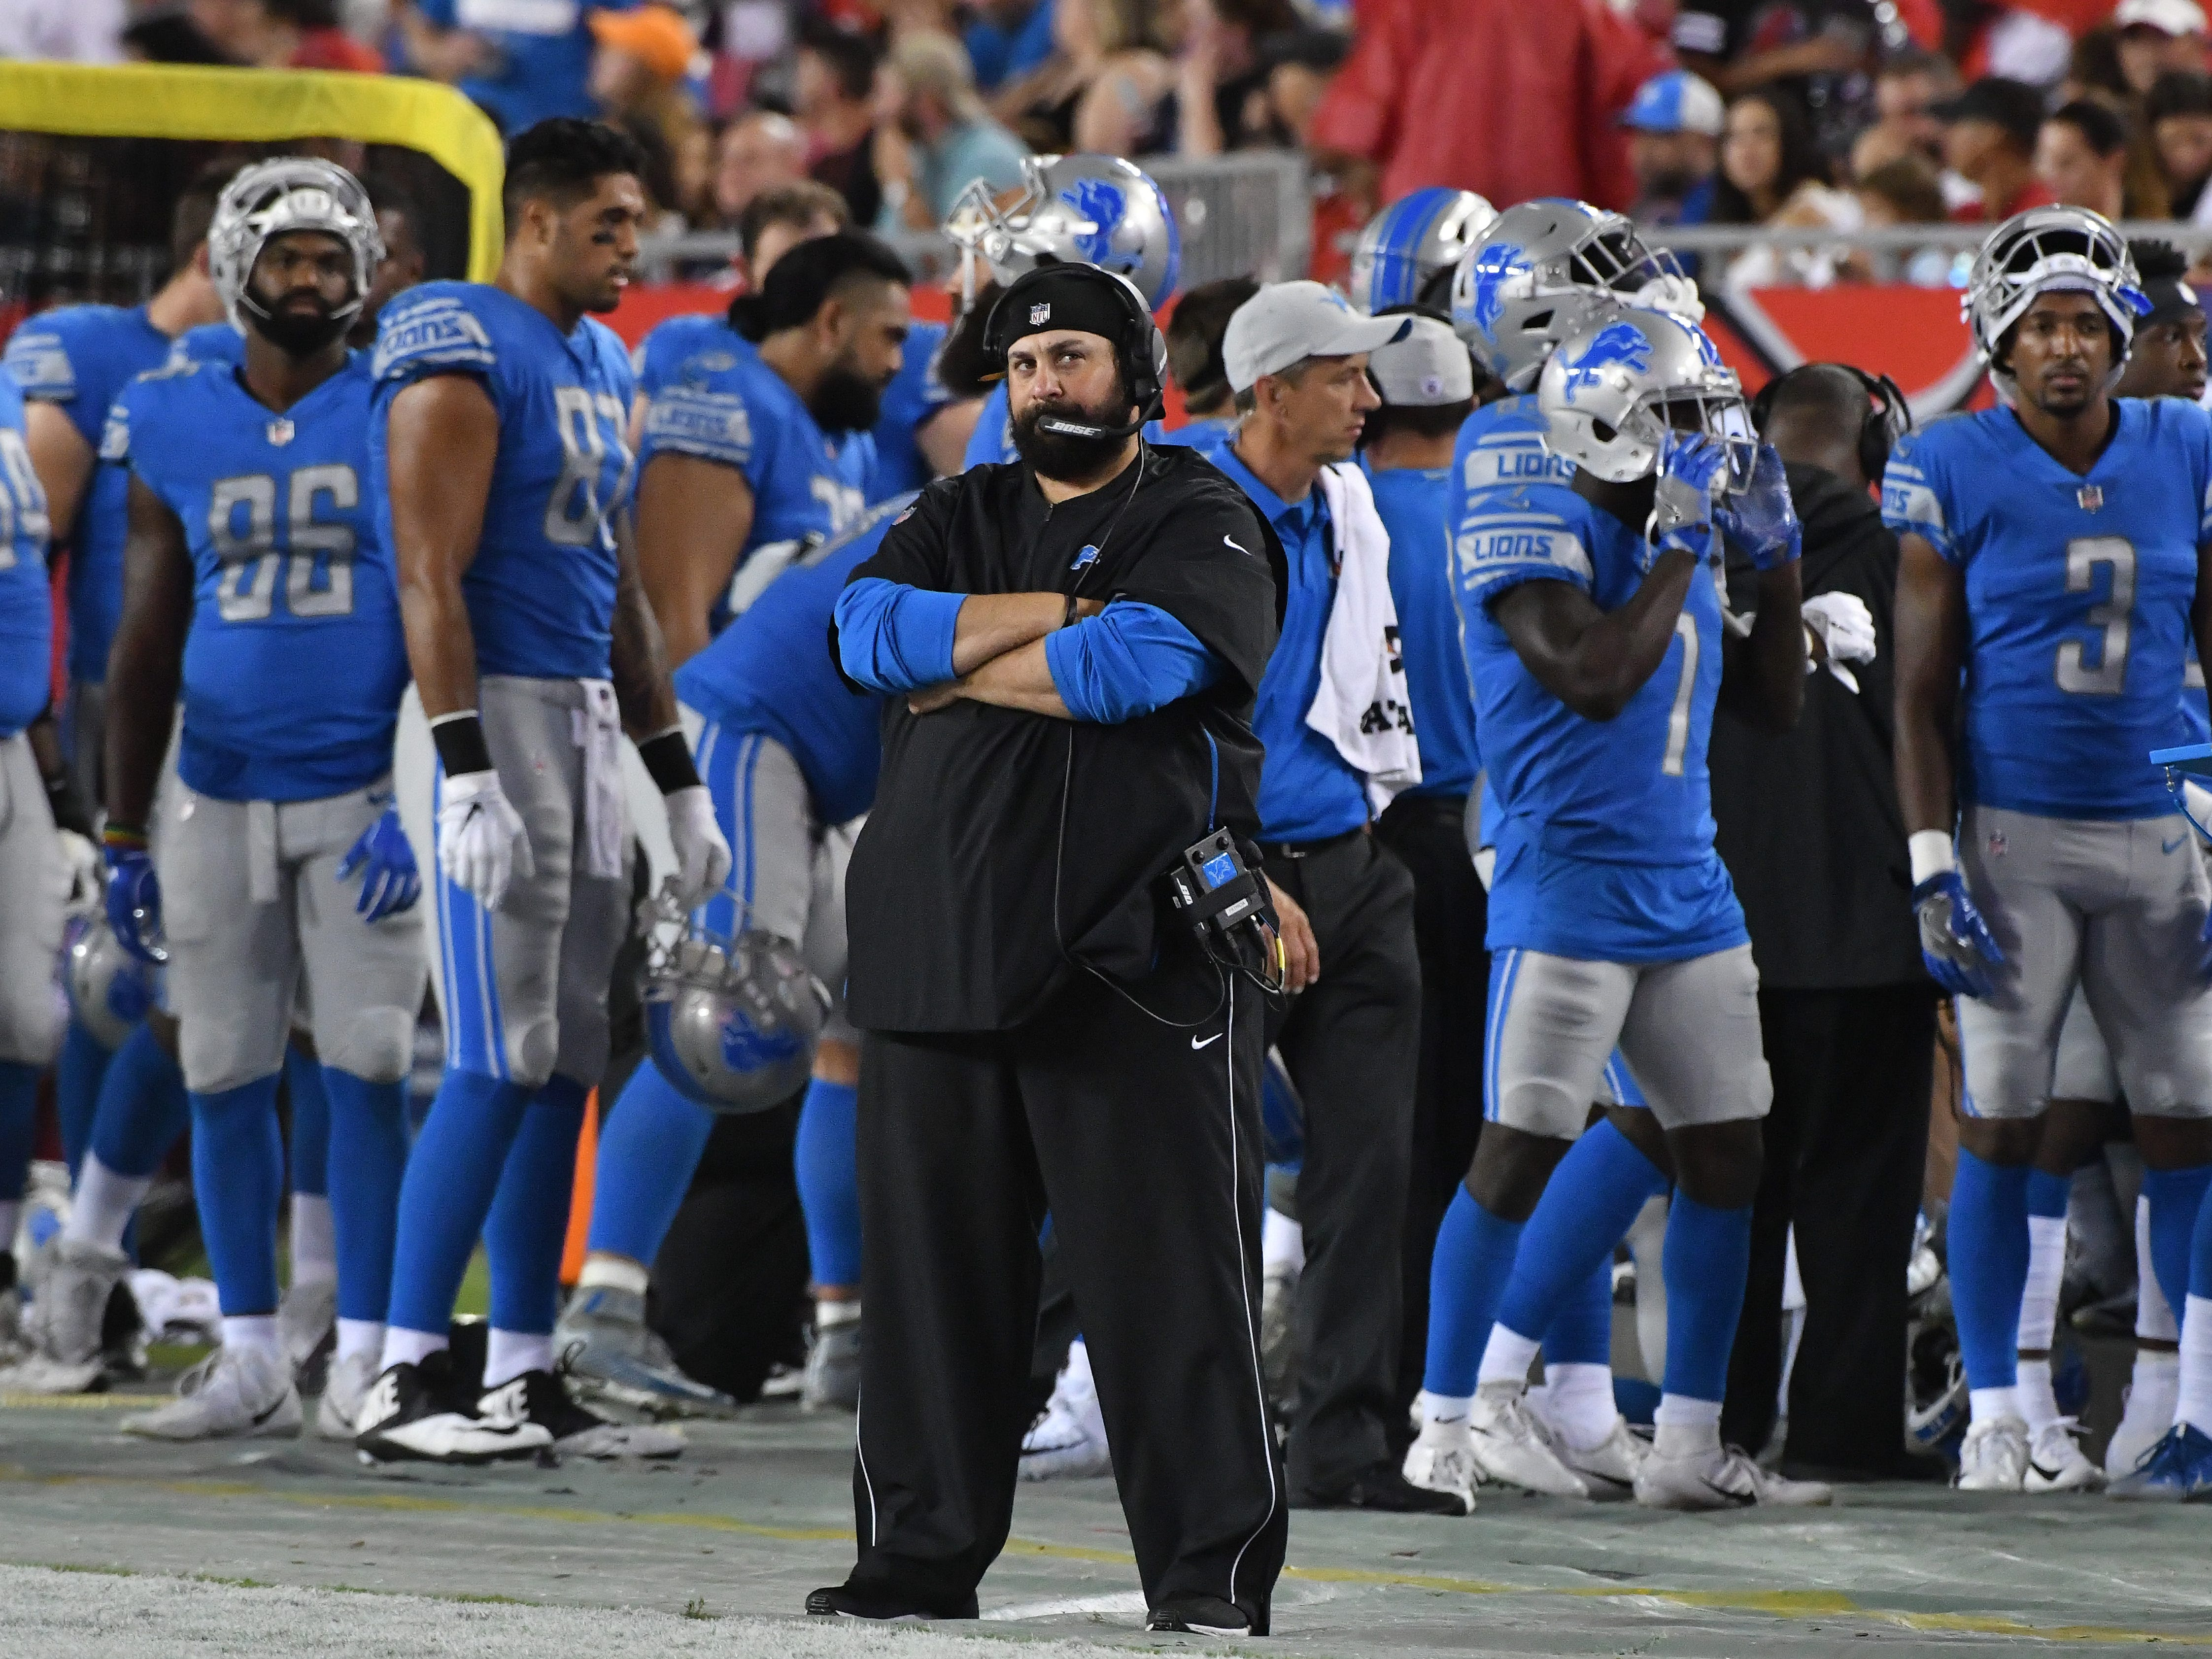 Lions head coach Matt Patricia on the sidelines in the third quarter.